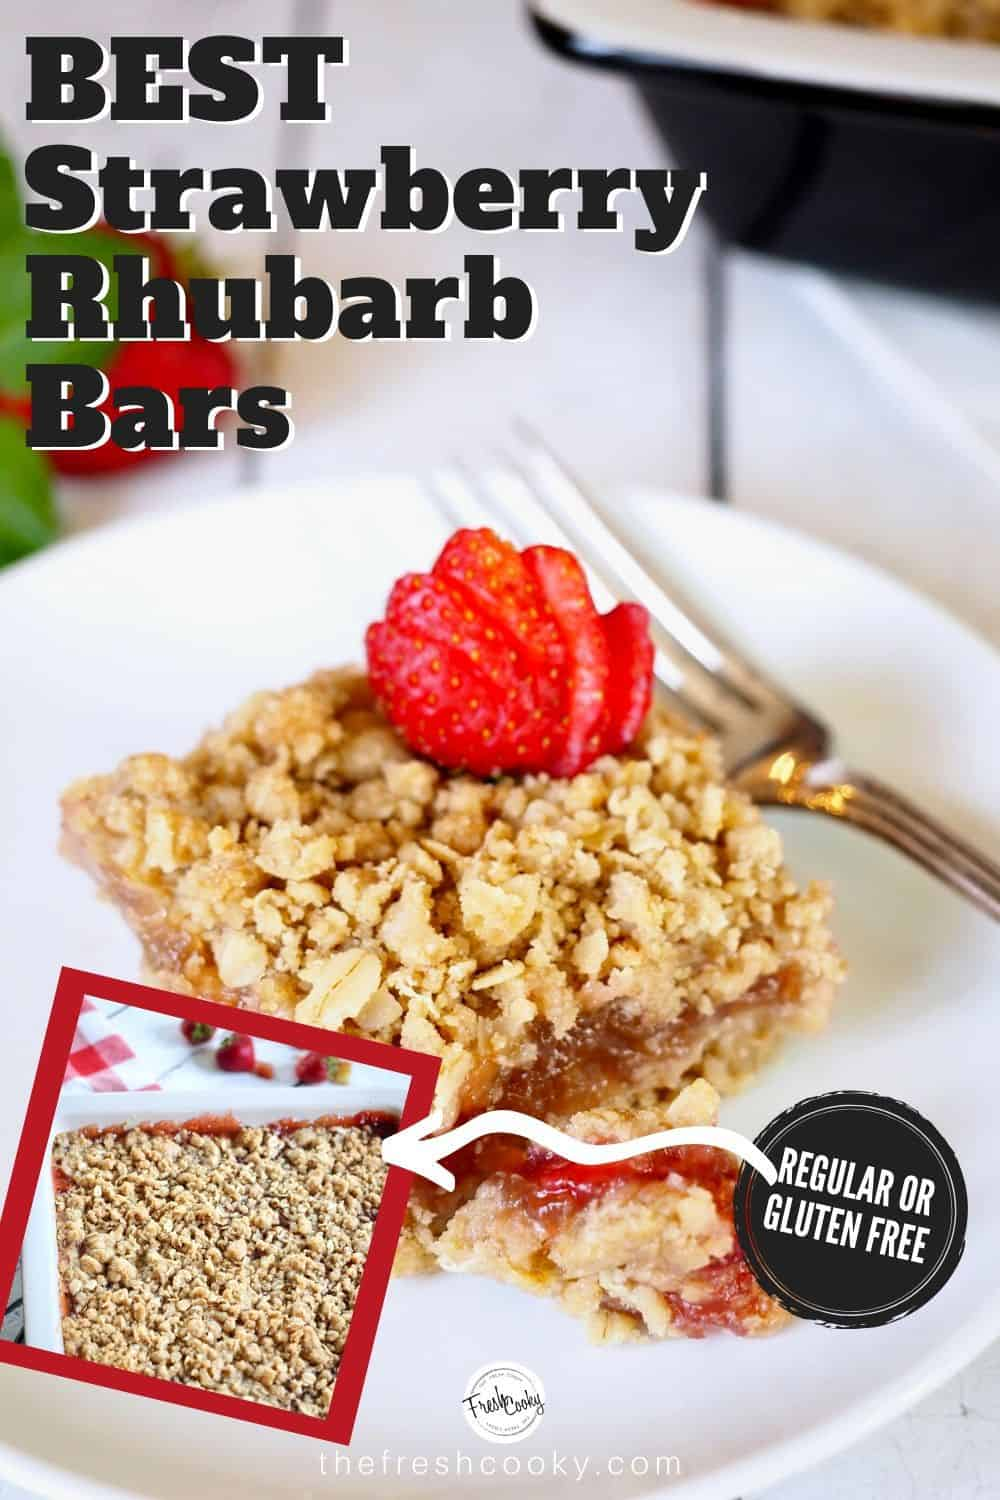 These strawberry rhubarb crumb bars combine an easy oatmeal shortbread crust, a ribbon of sweet-tart strawberry rhubarb filling, and an amazing crumble oat topping. Recipe via @thefreshcooky | #glutenfree #vegetarian #eggfree #dessert #fruit #strawberry #rhubarb #bars #crumble #crisp #spring #summer #dessert #thefreshcooky via @thefreshcooky